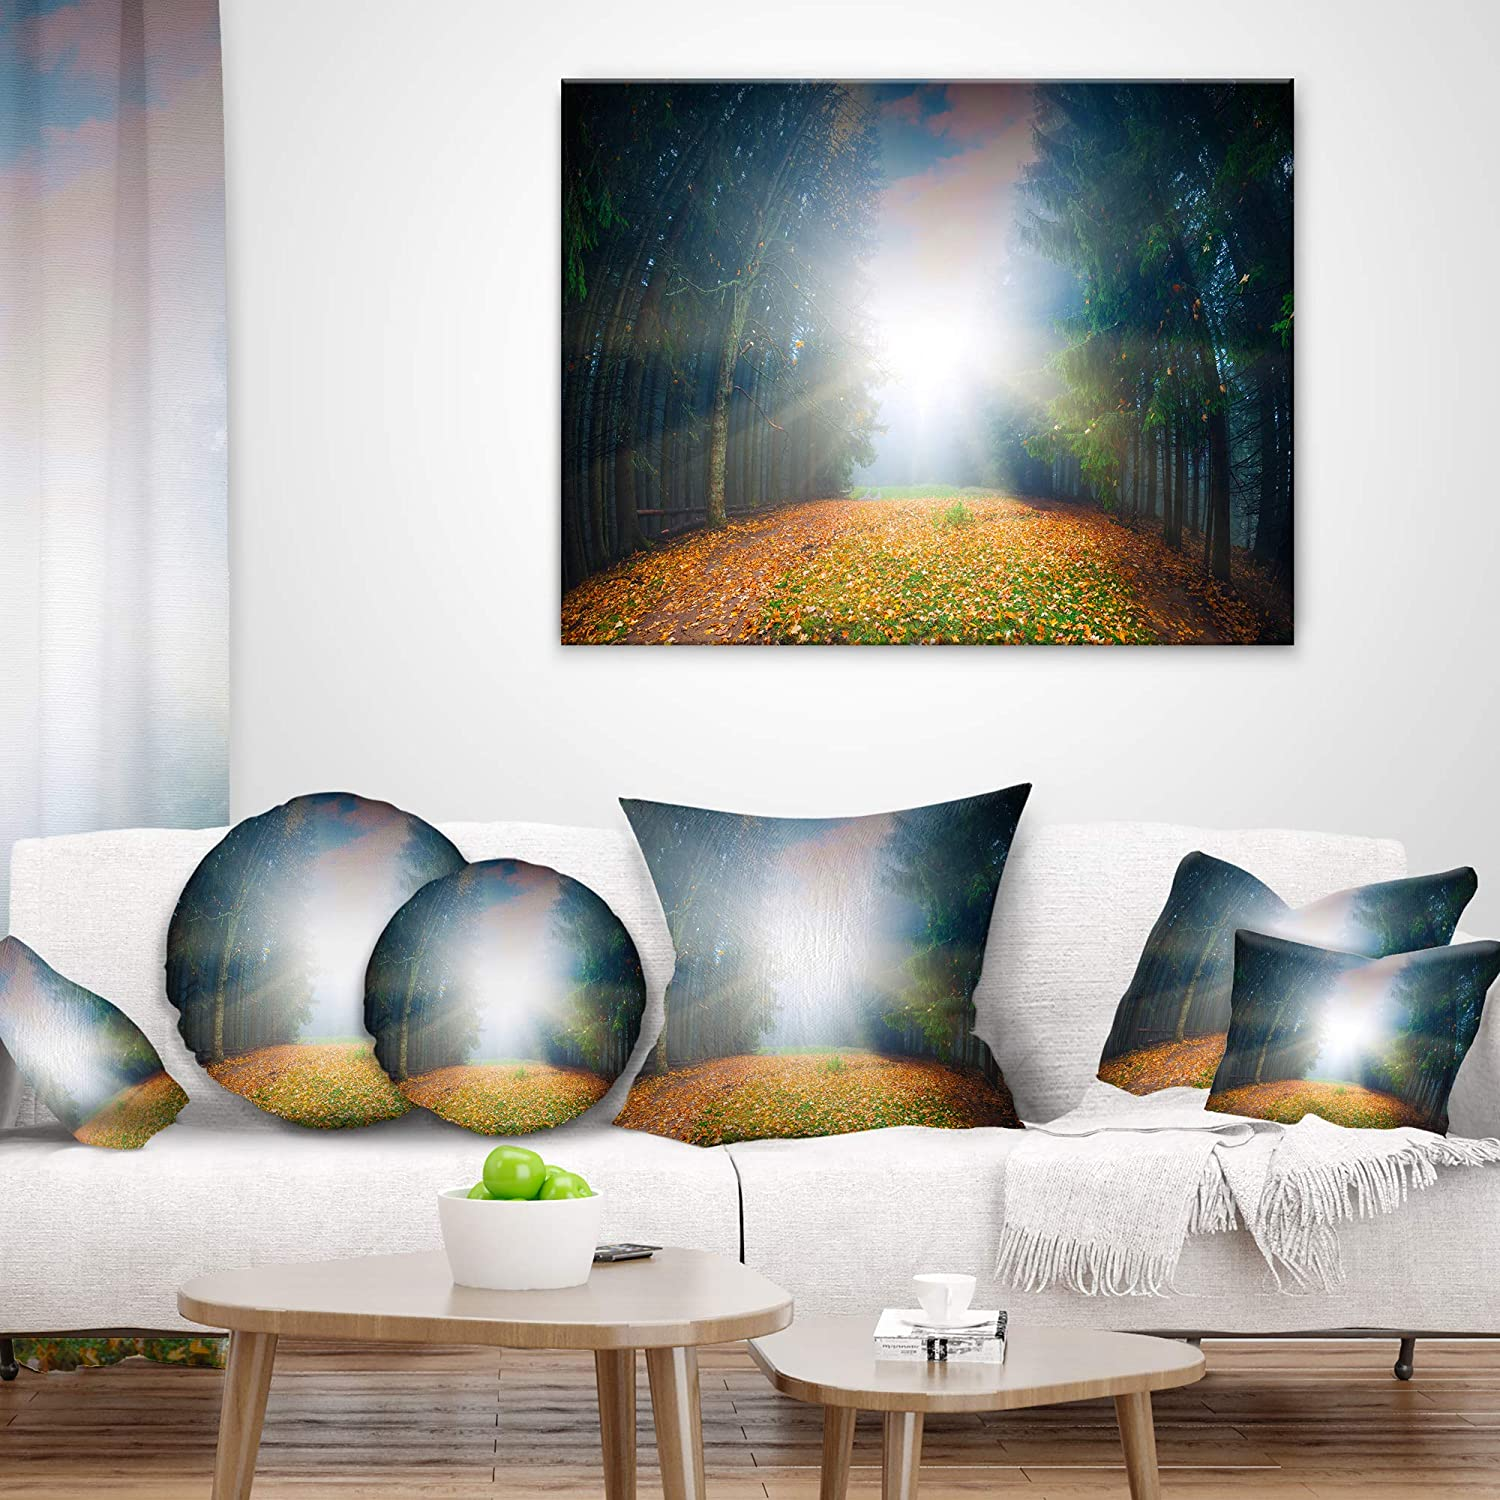 Sofa Throw Pillow 26 x 26 Designart CU9717-26-26 Rising Sun Over Colorful Forest Landscape Photo Cushion Cover for Living Room